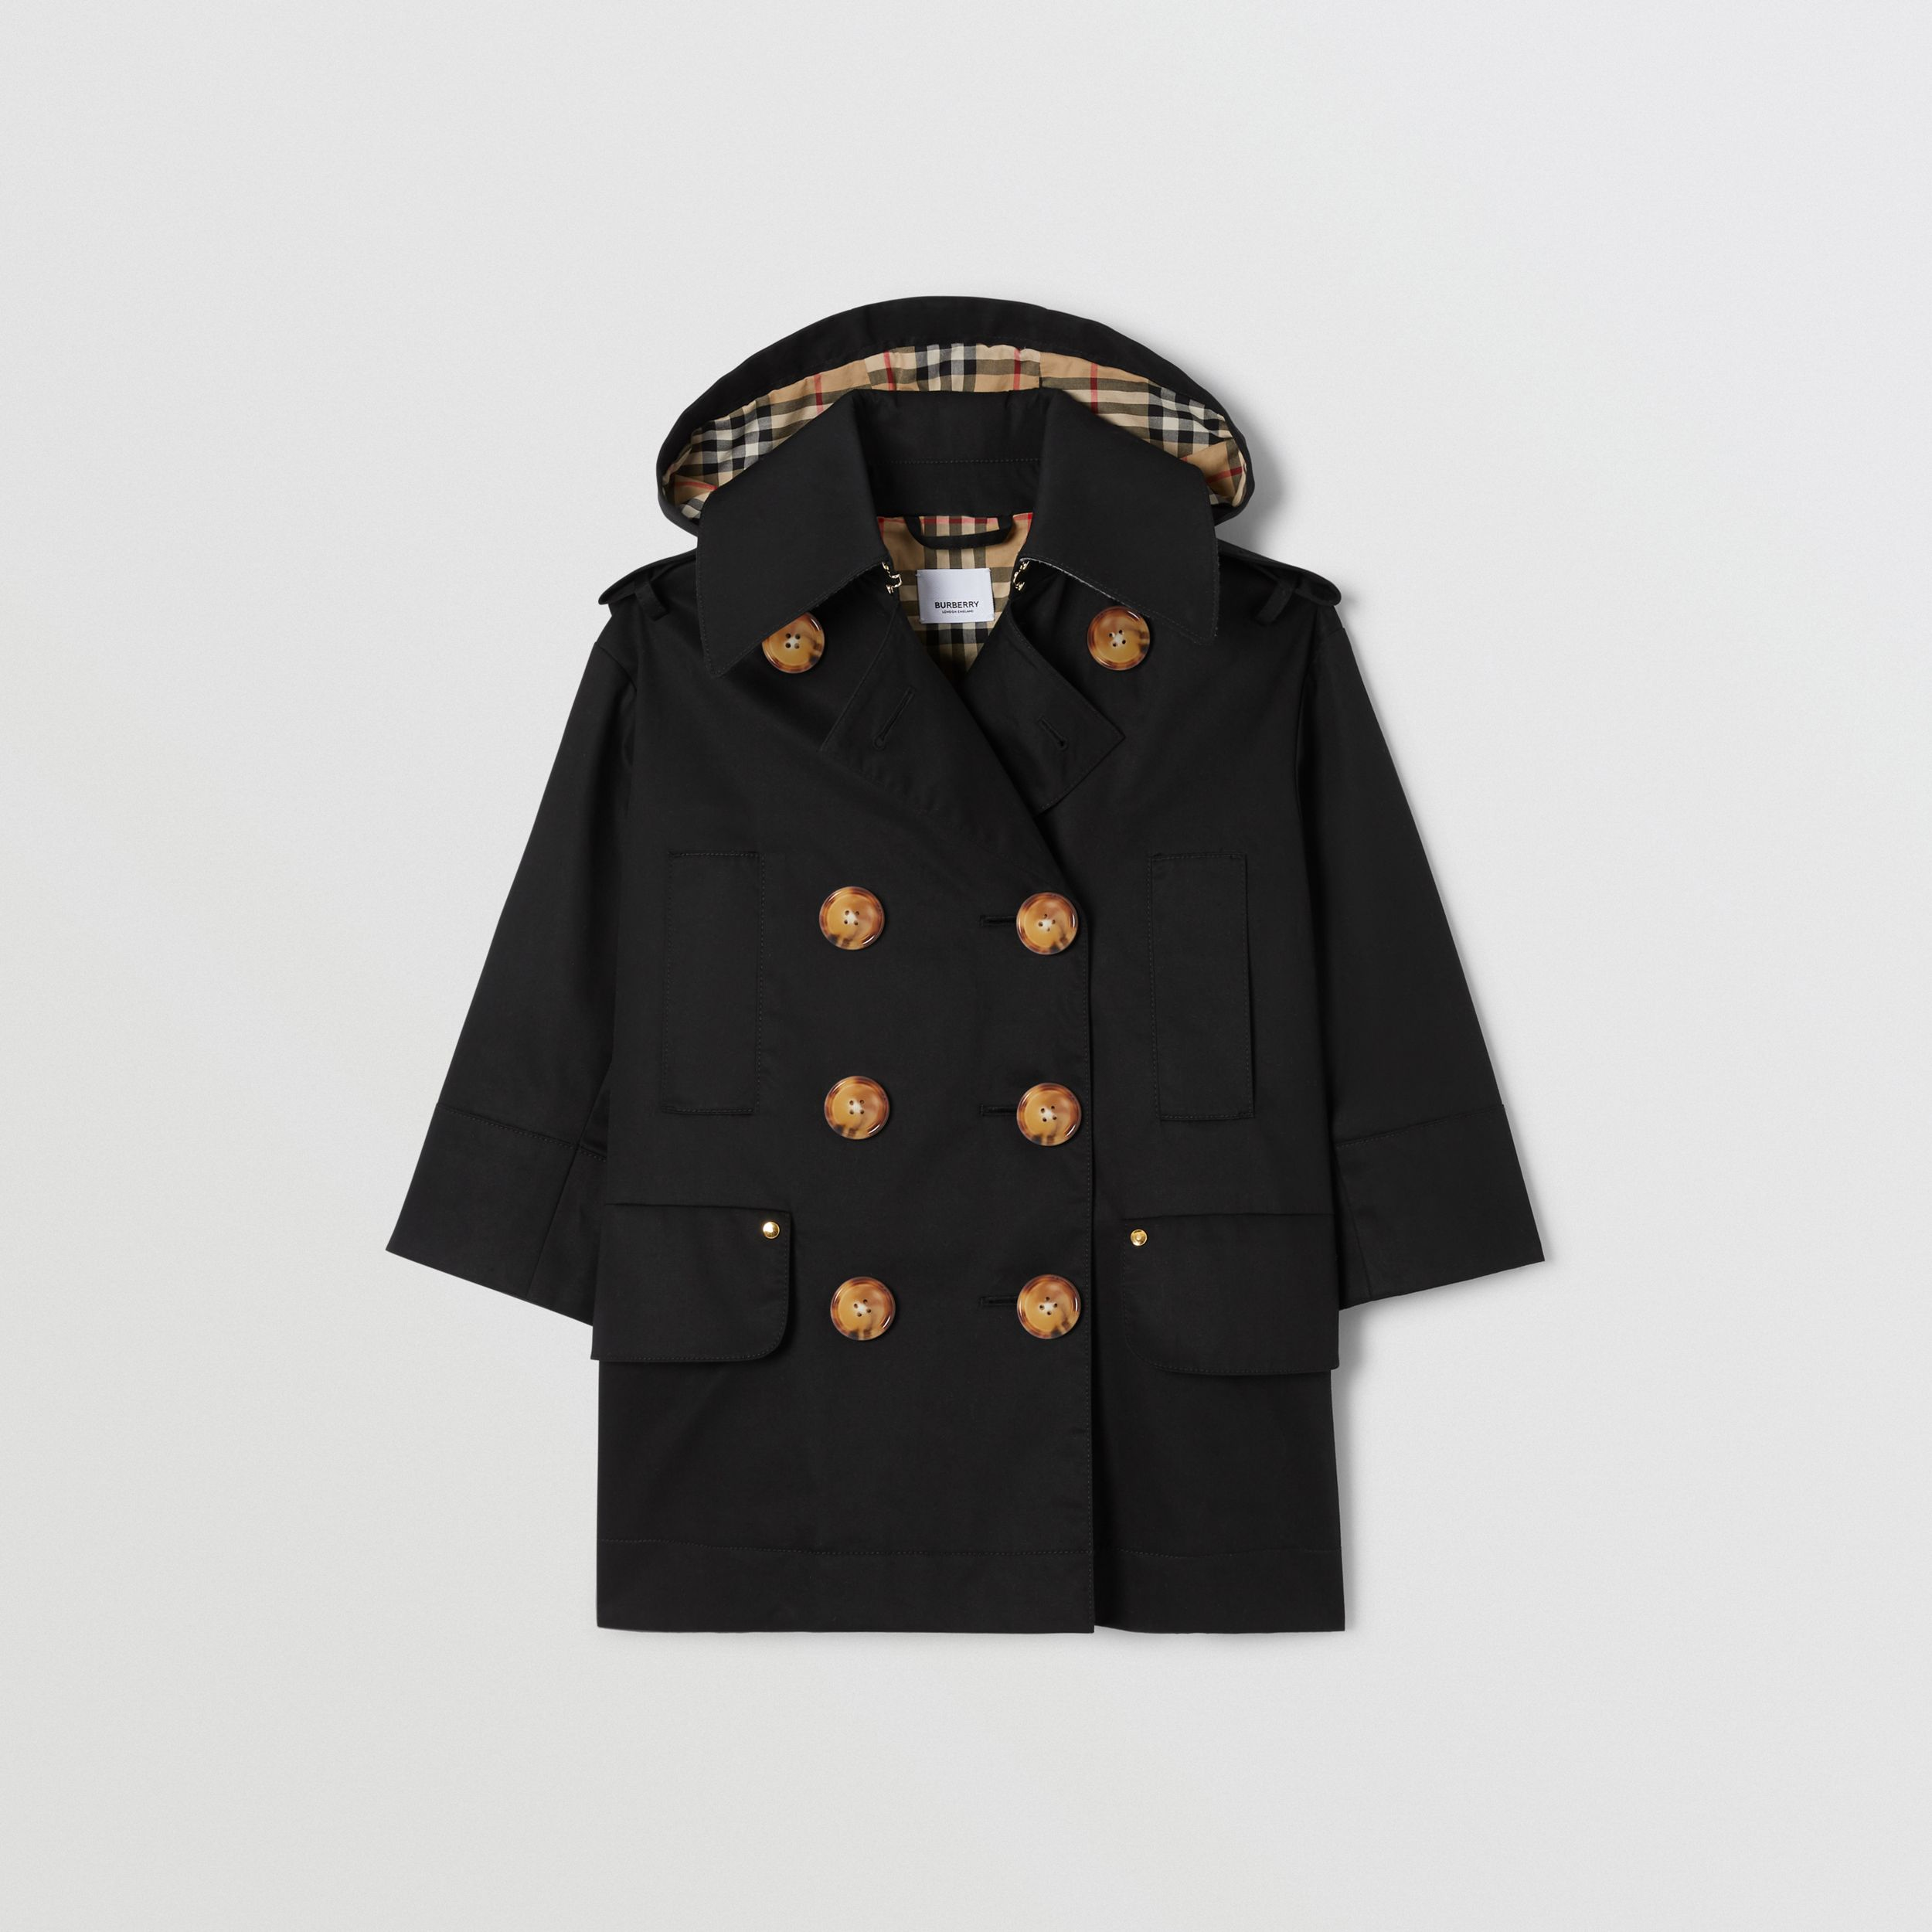 Cotton Twill Hooded Trench Coat in Black | Burberry United States - 1